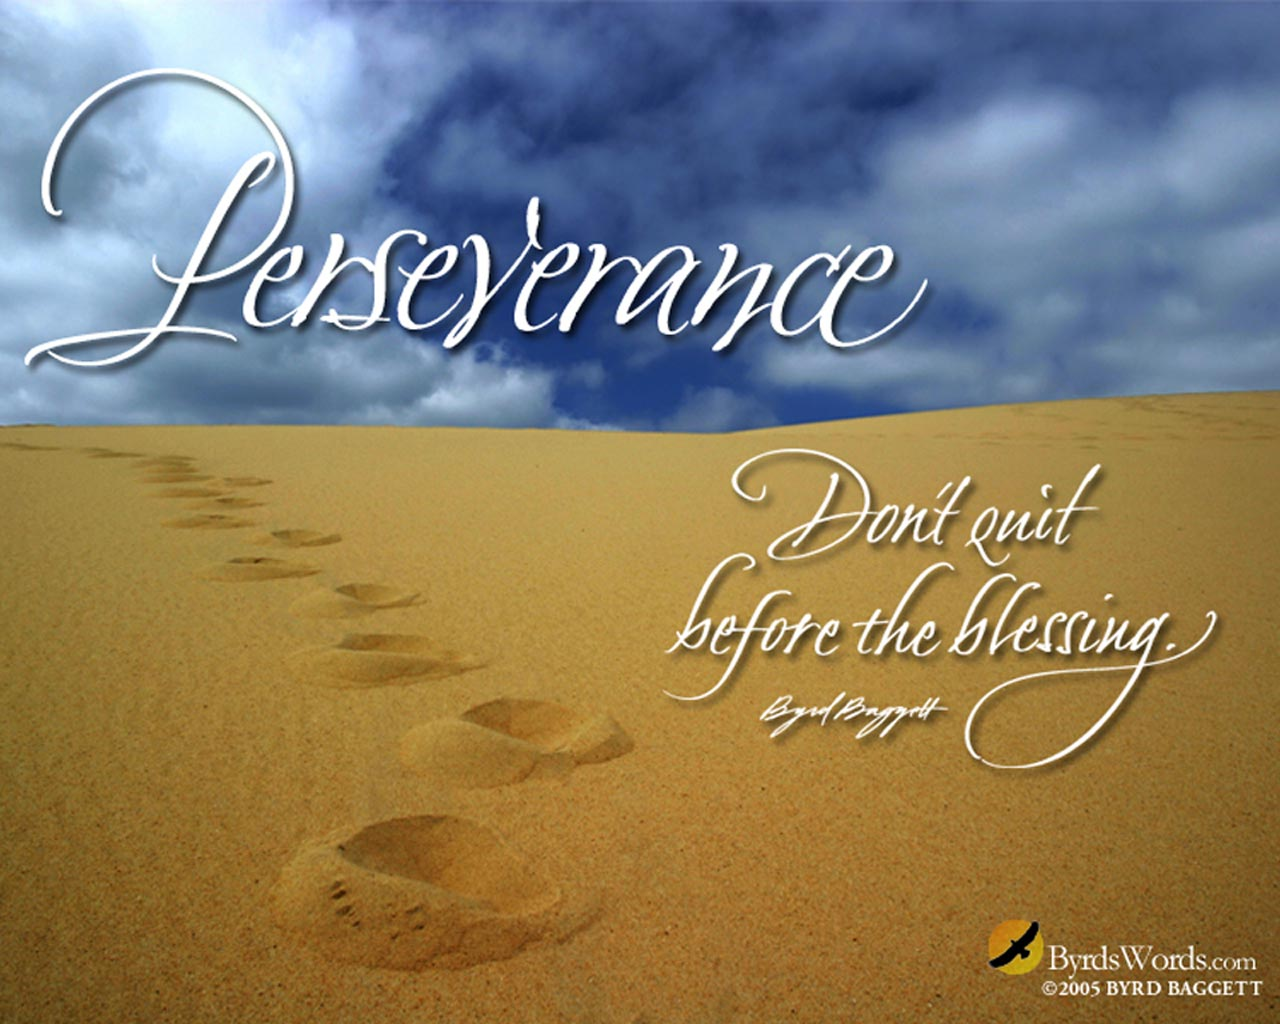 Future Business Of 21st Century: PERSEVERANCE QUOTES